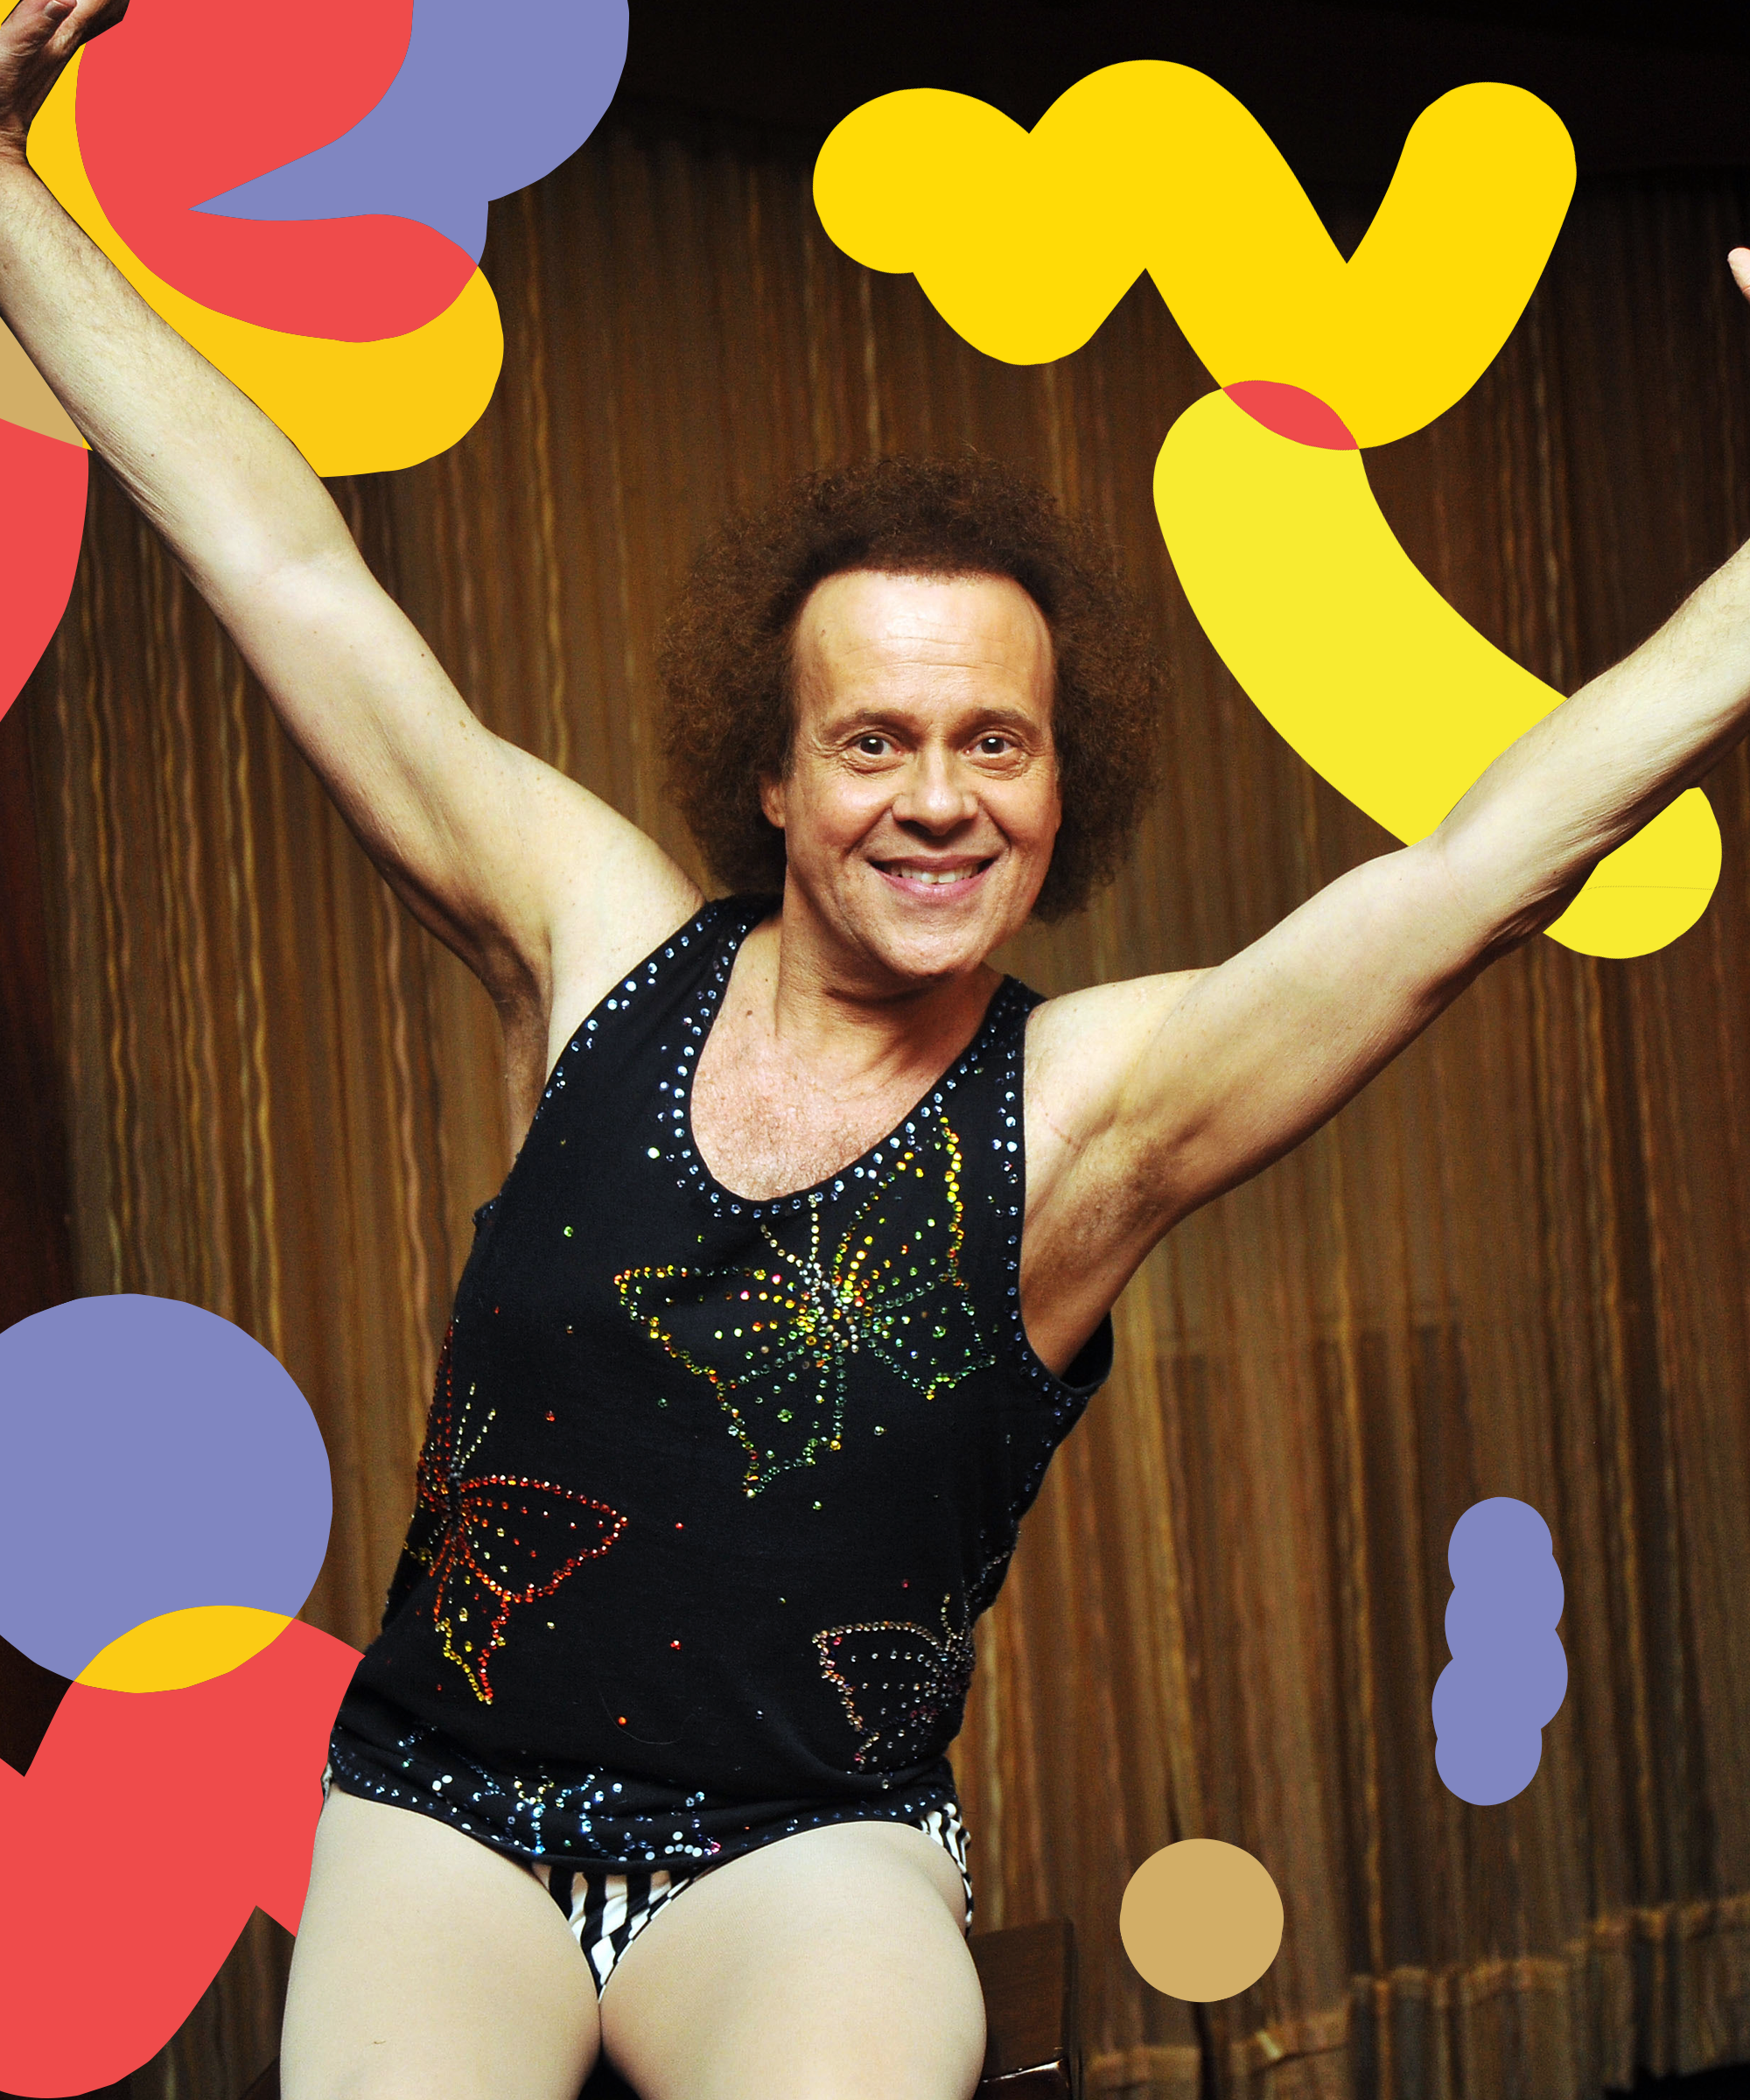 LA police: Richard Simmons is 'perfectly fine'